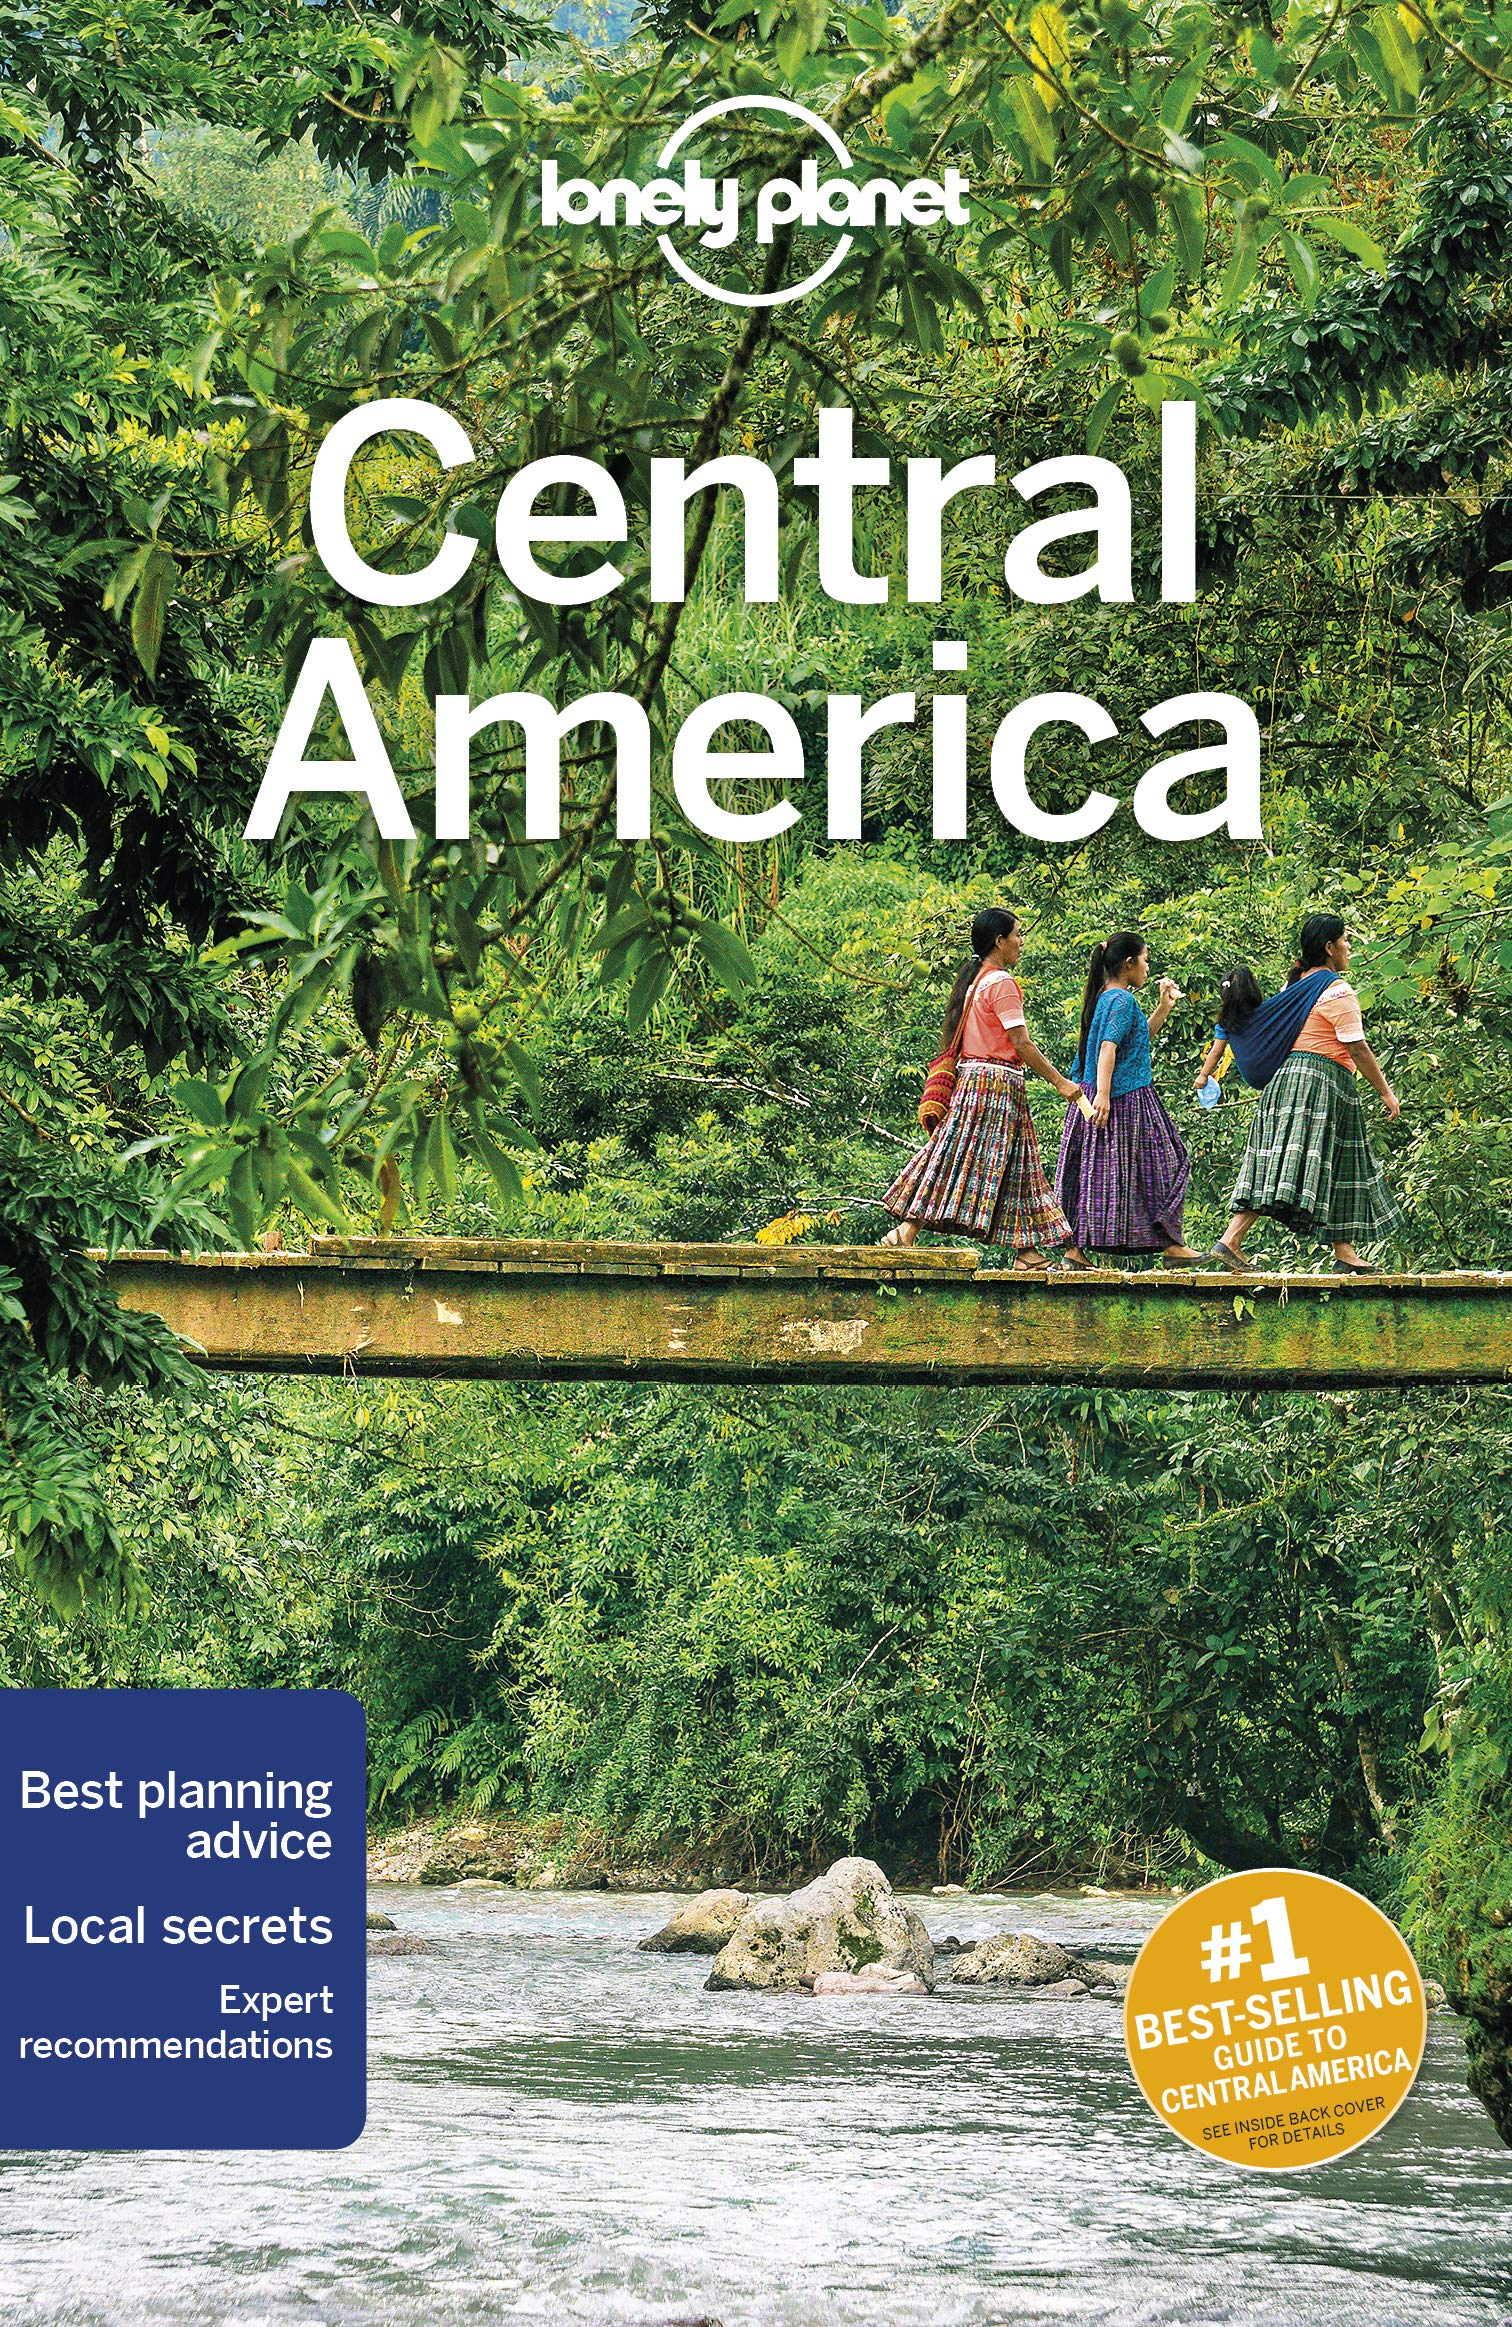 Lonely Planet Central America 9781786574930  Lonely Planet Travel Guides  Reisgidsen Midden-Amerika